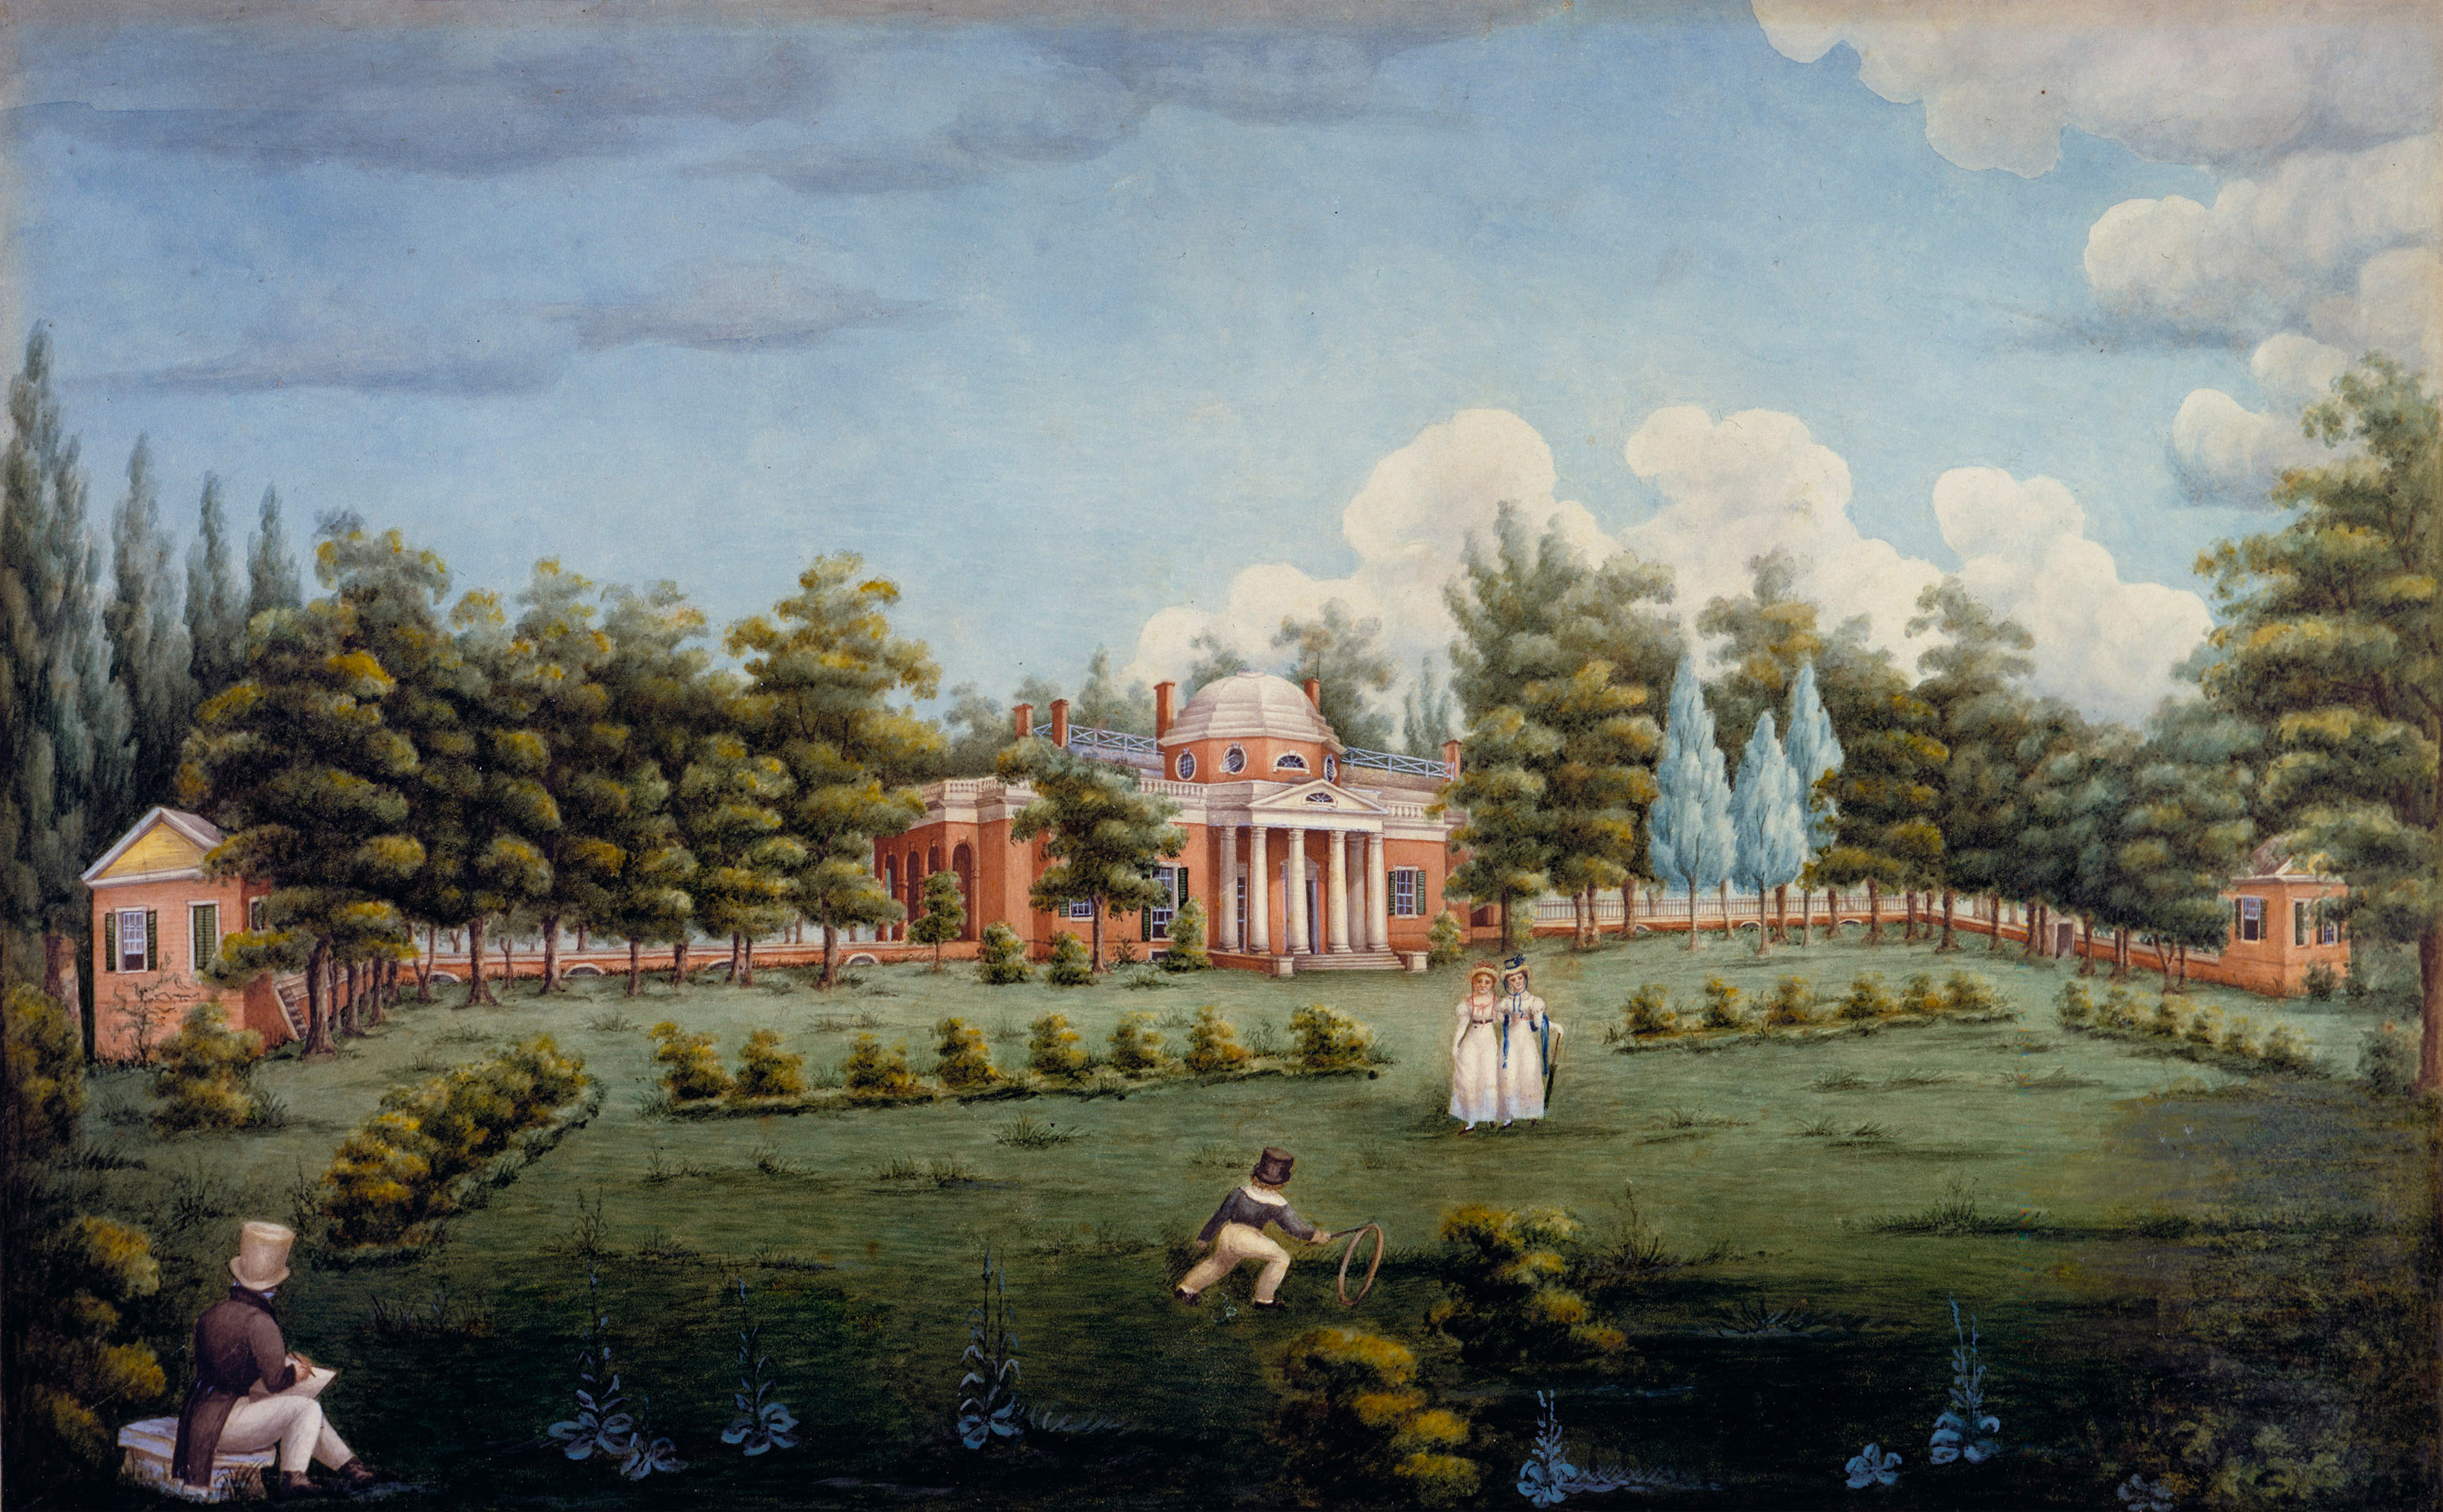 The famous gardens of Monticello, Thomas Jefferson's estate. Lemon balm was a prominent plant in the gardens.